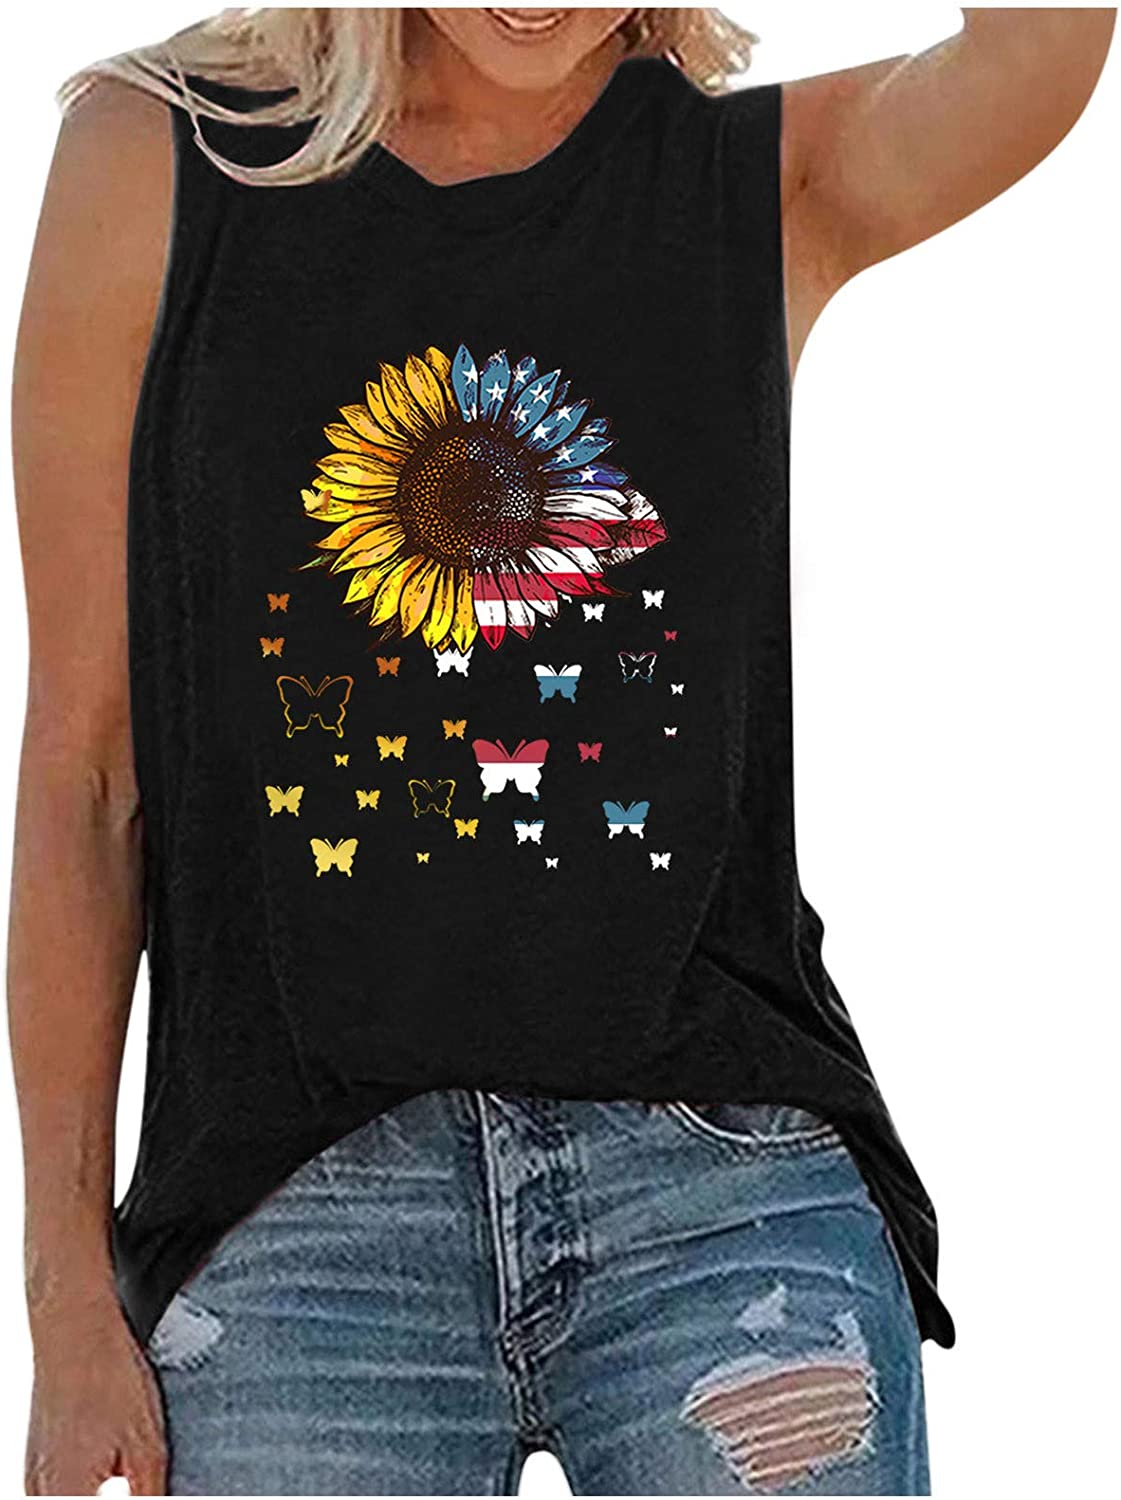 Summer Tank Tops for Women,Womens Tank Tops Sleeveless Summer Shirts Round Neck Sunflower Cute Printed Tshirt Workout Blouse Casual Tunic Tee